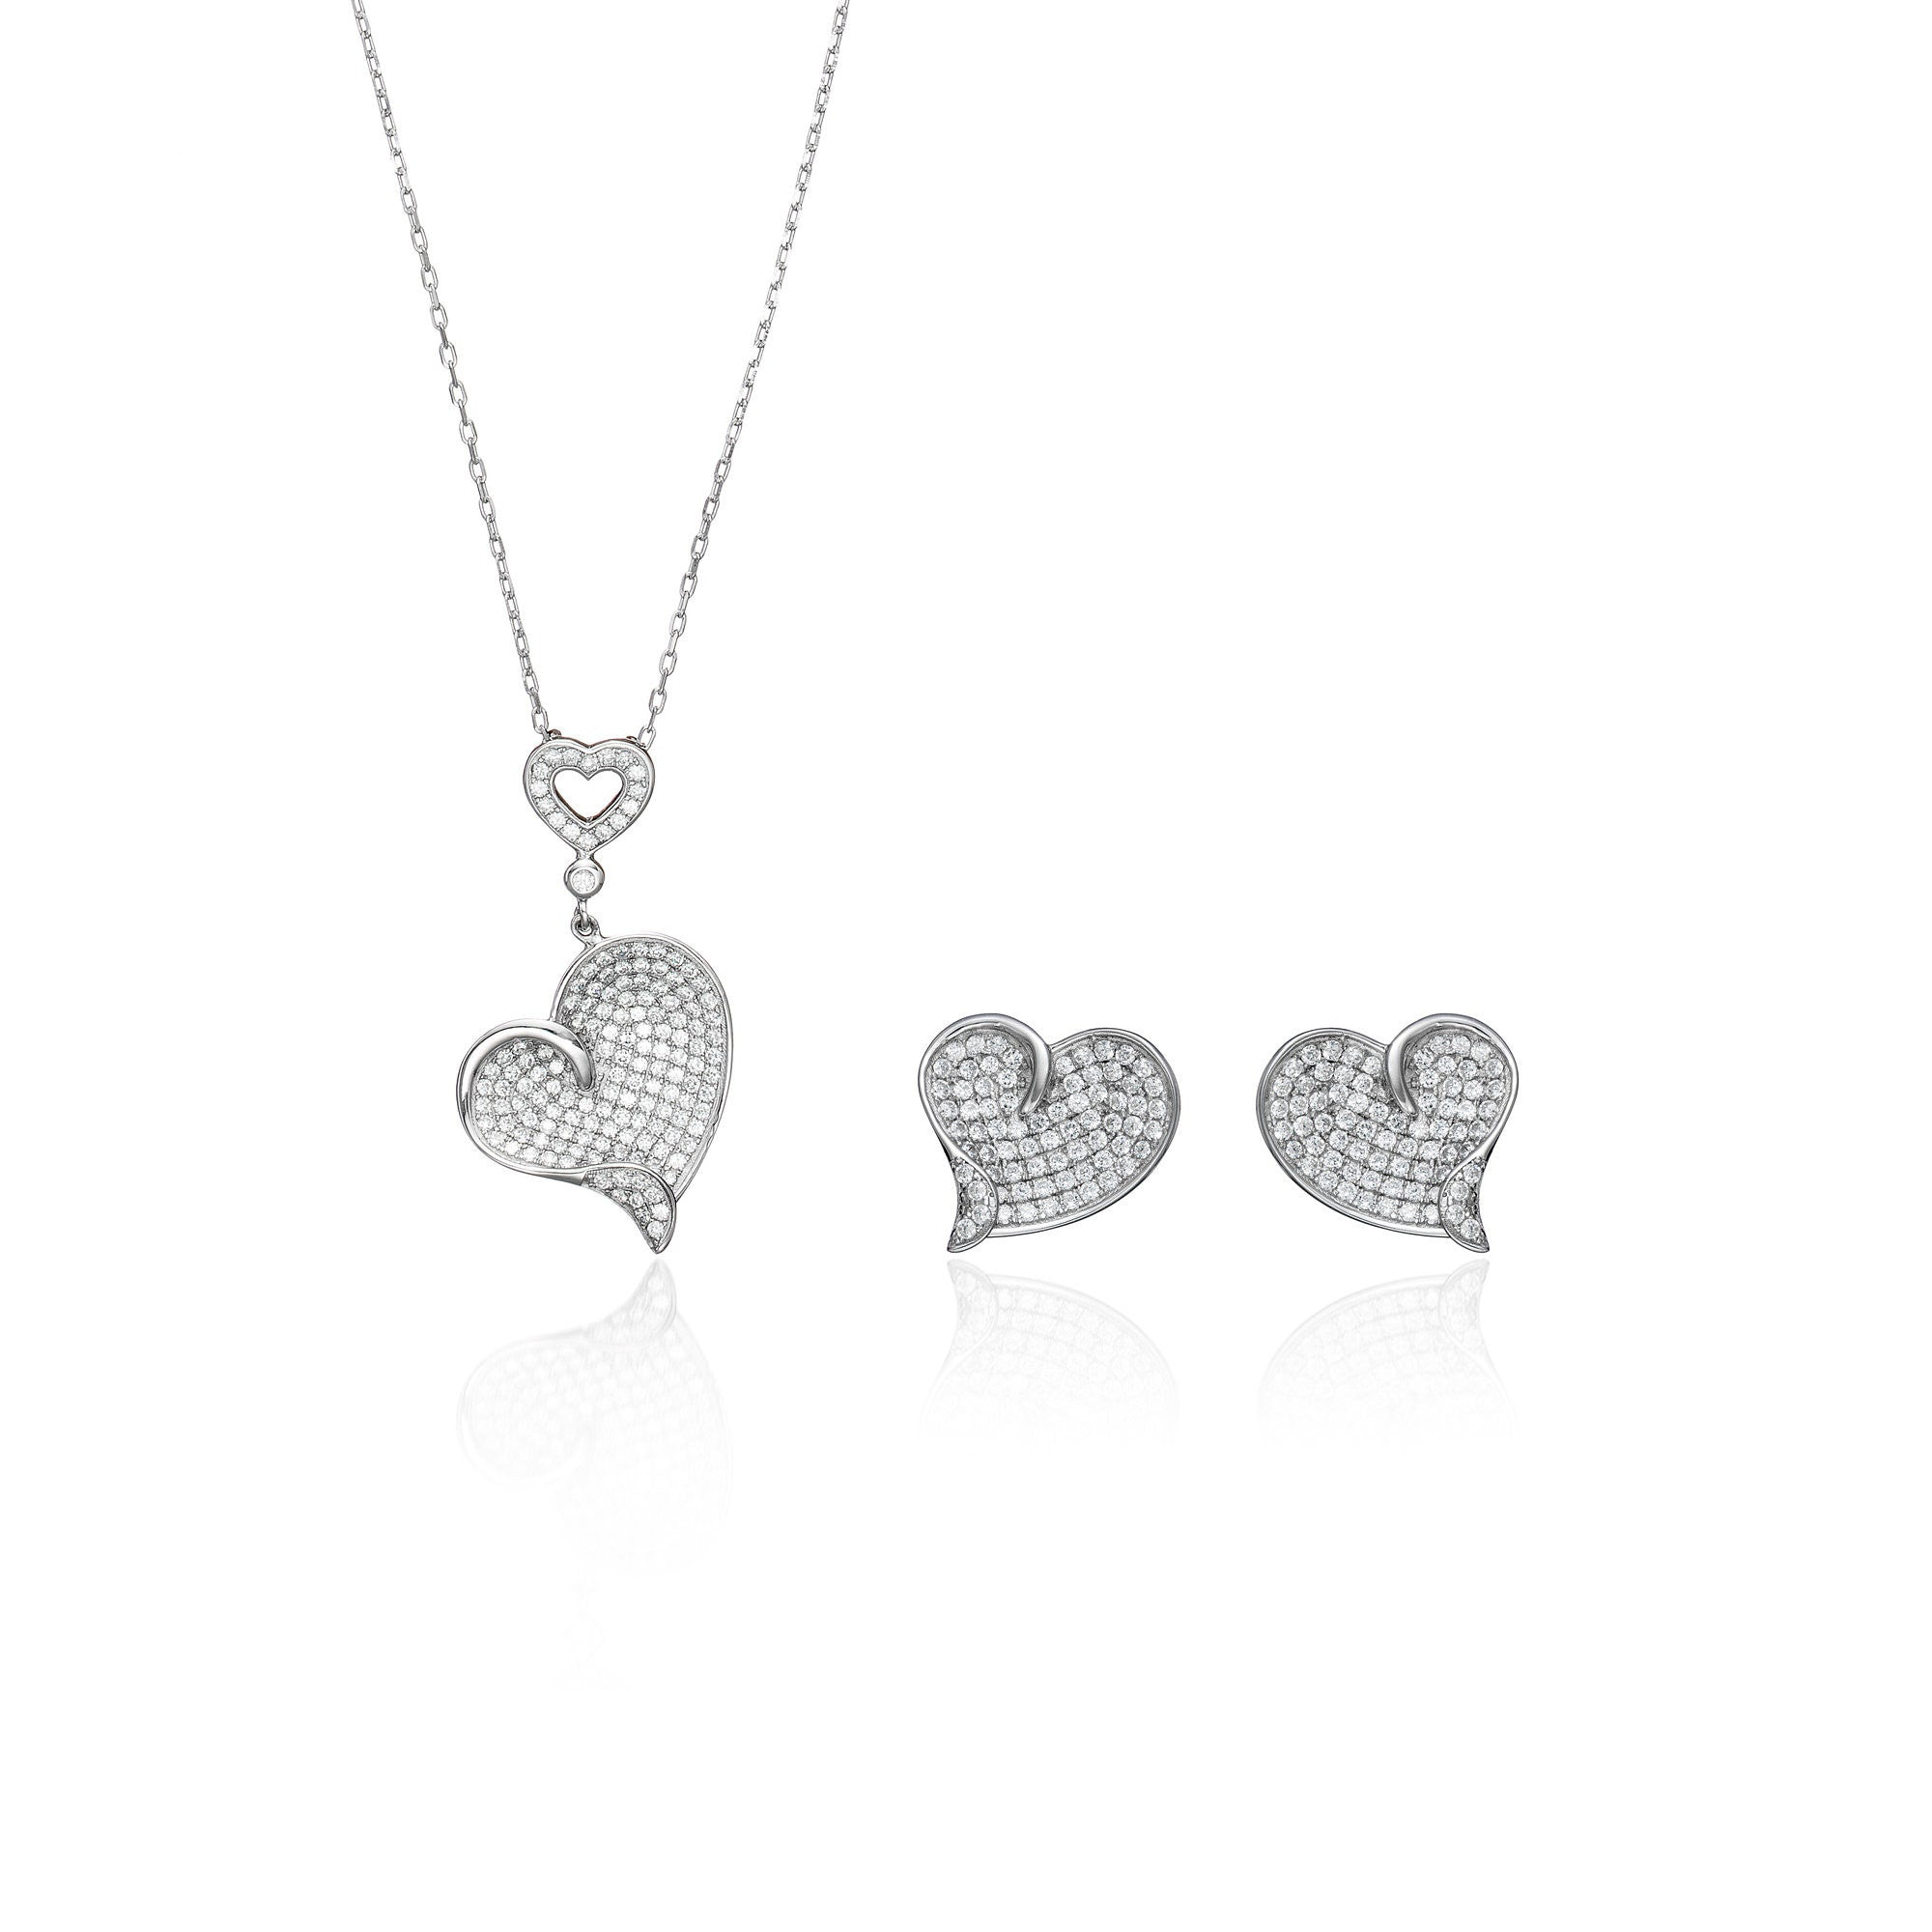 Glamour Heart Set